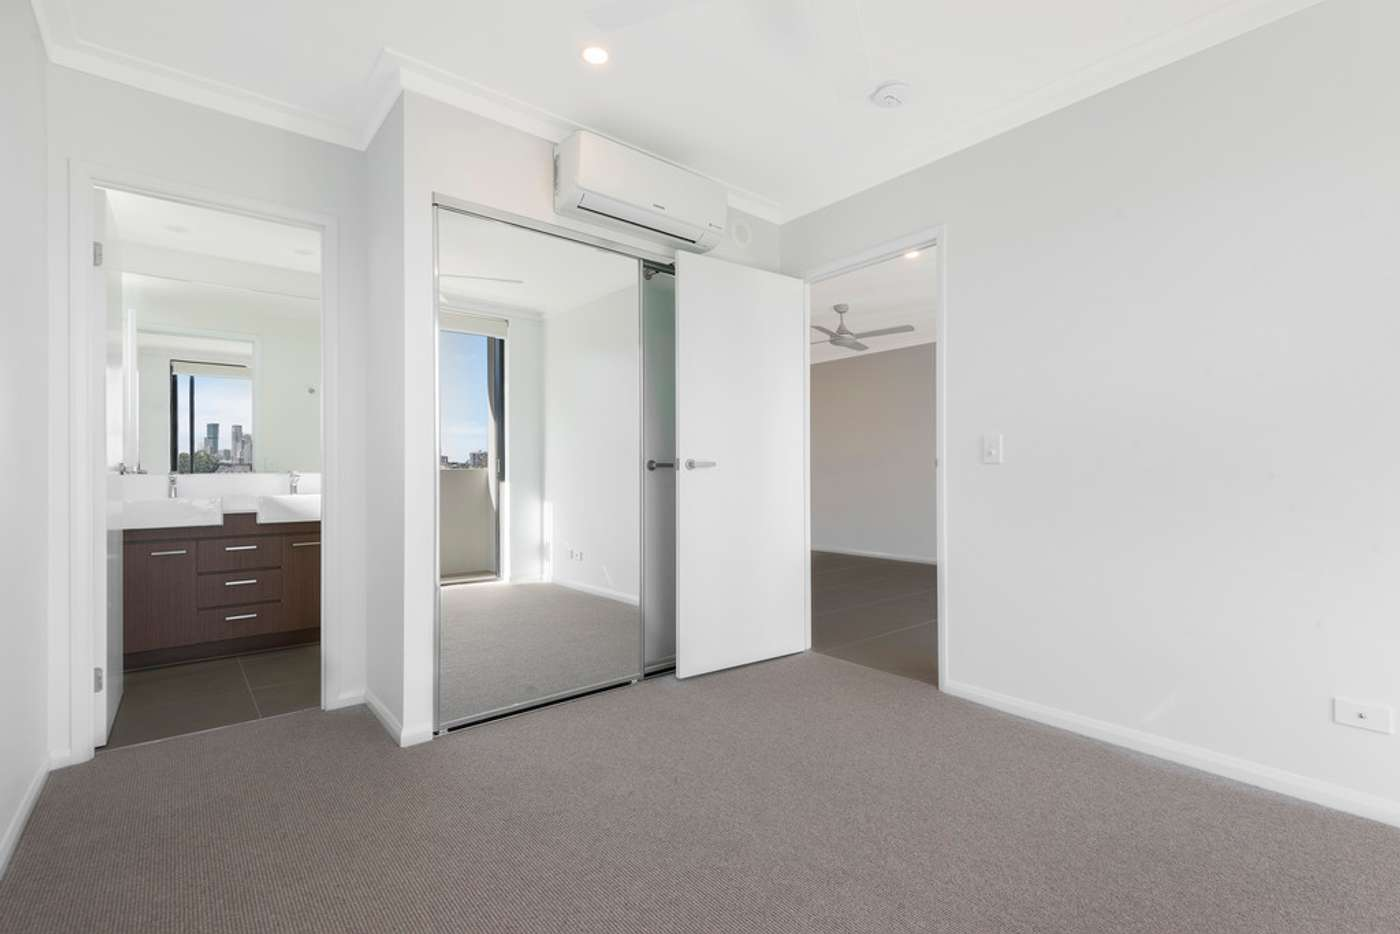 Sixth view of Homely apartment listing, 204/6 Algar Street, Windsor QLD 4030